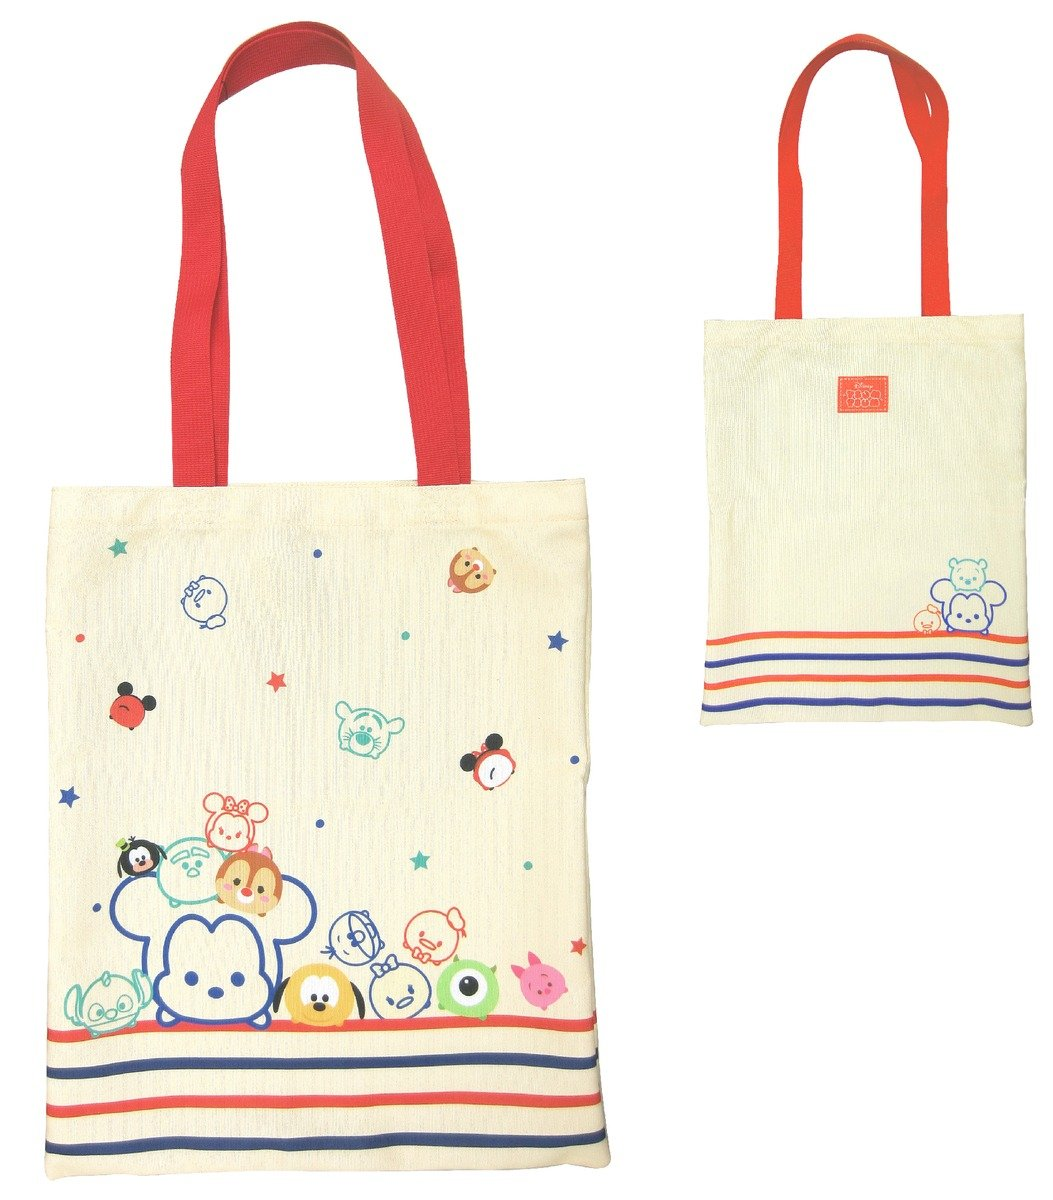 DISNEY-Tote Bag